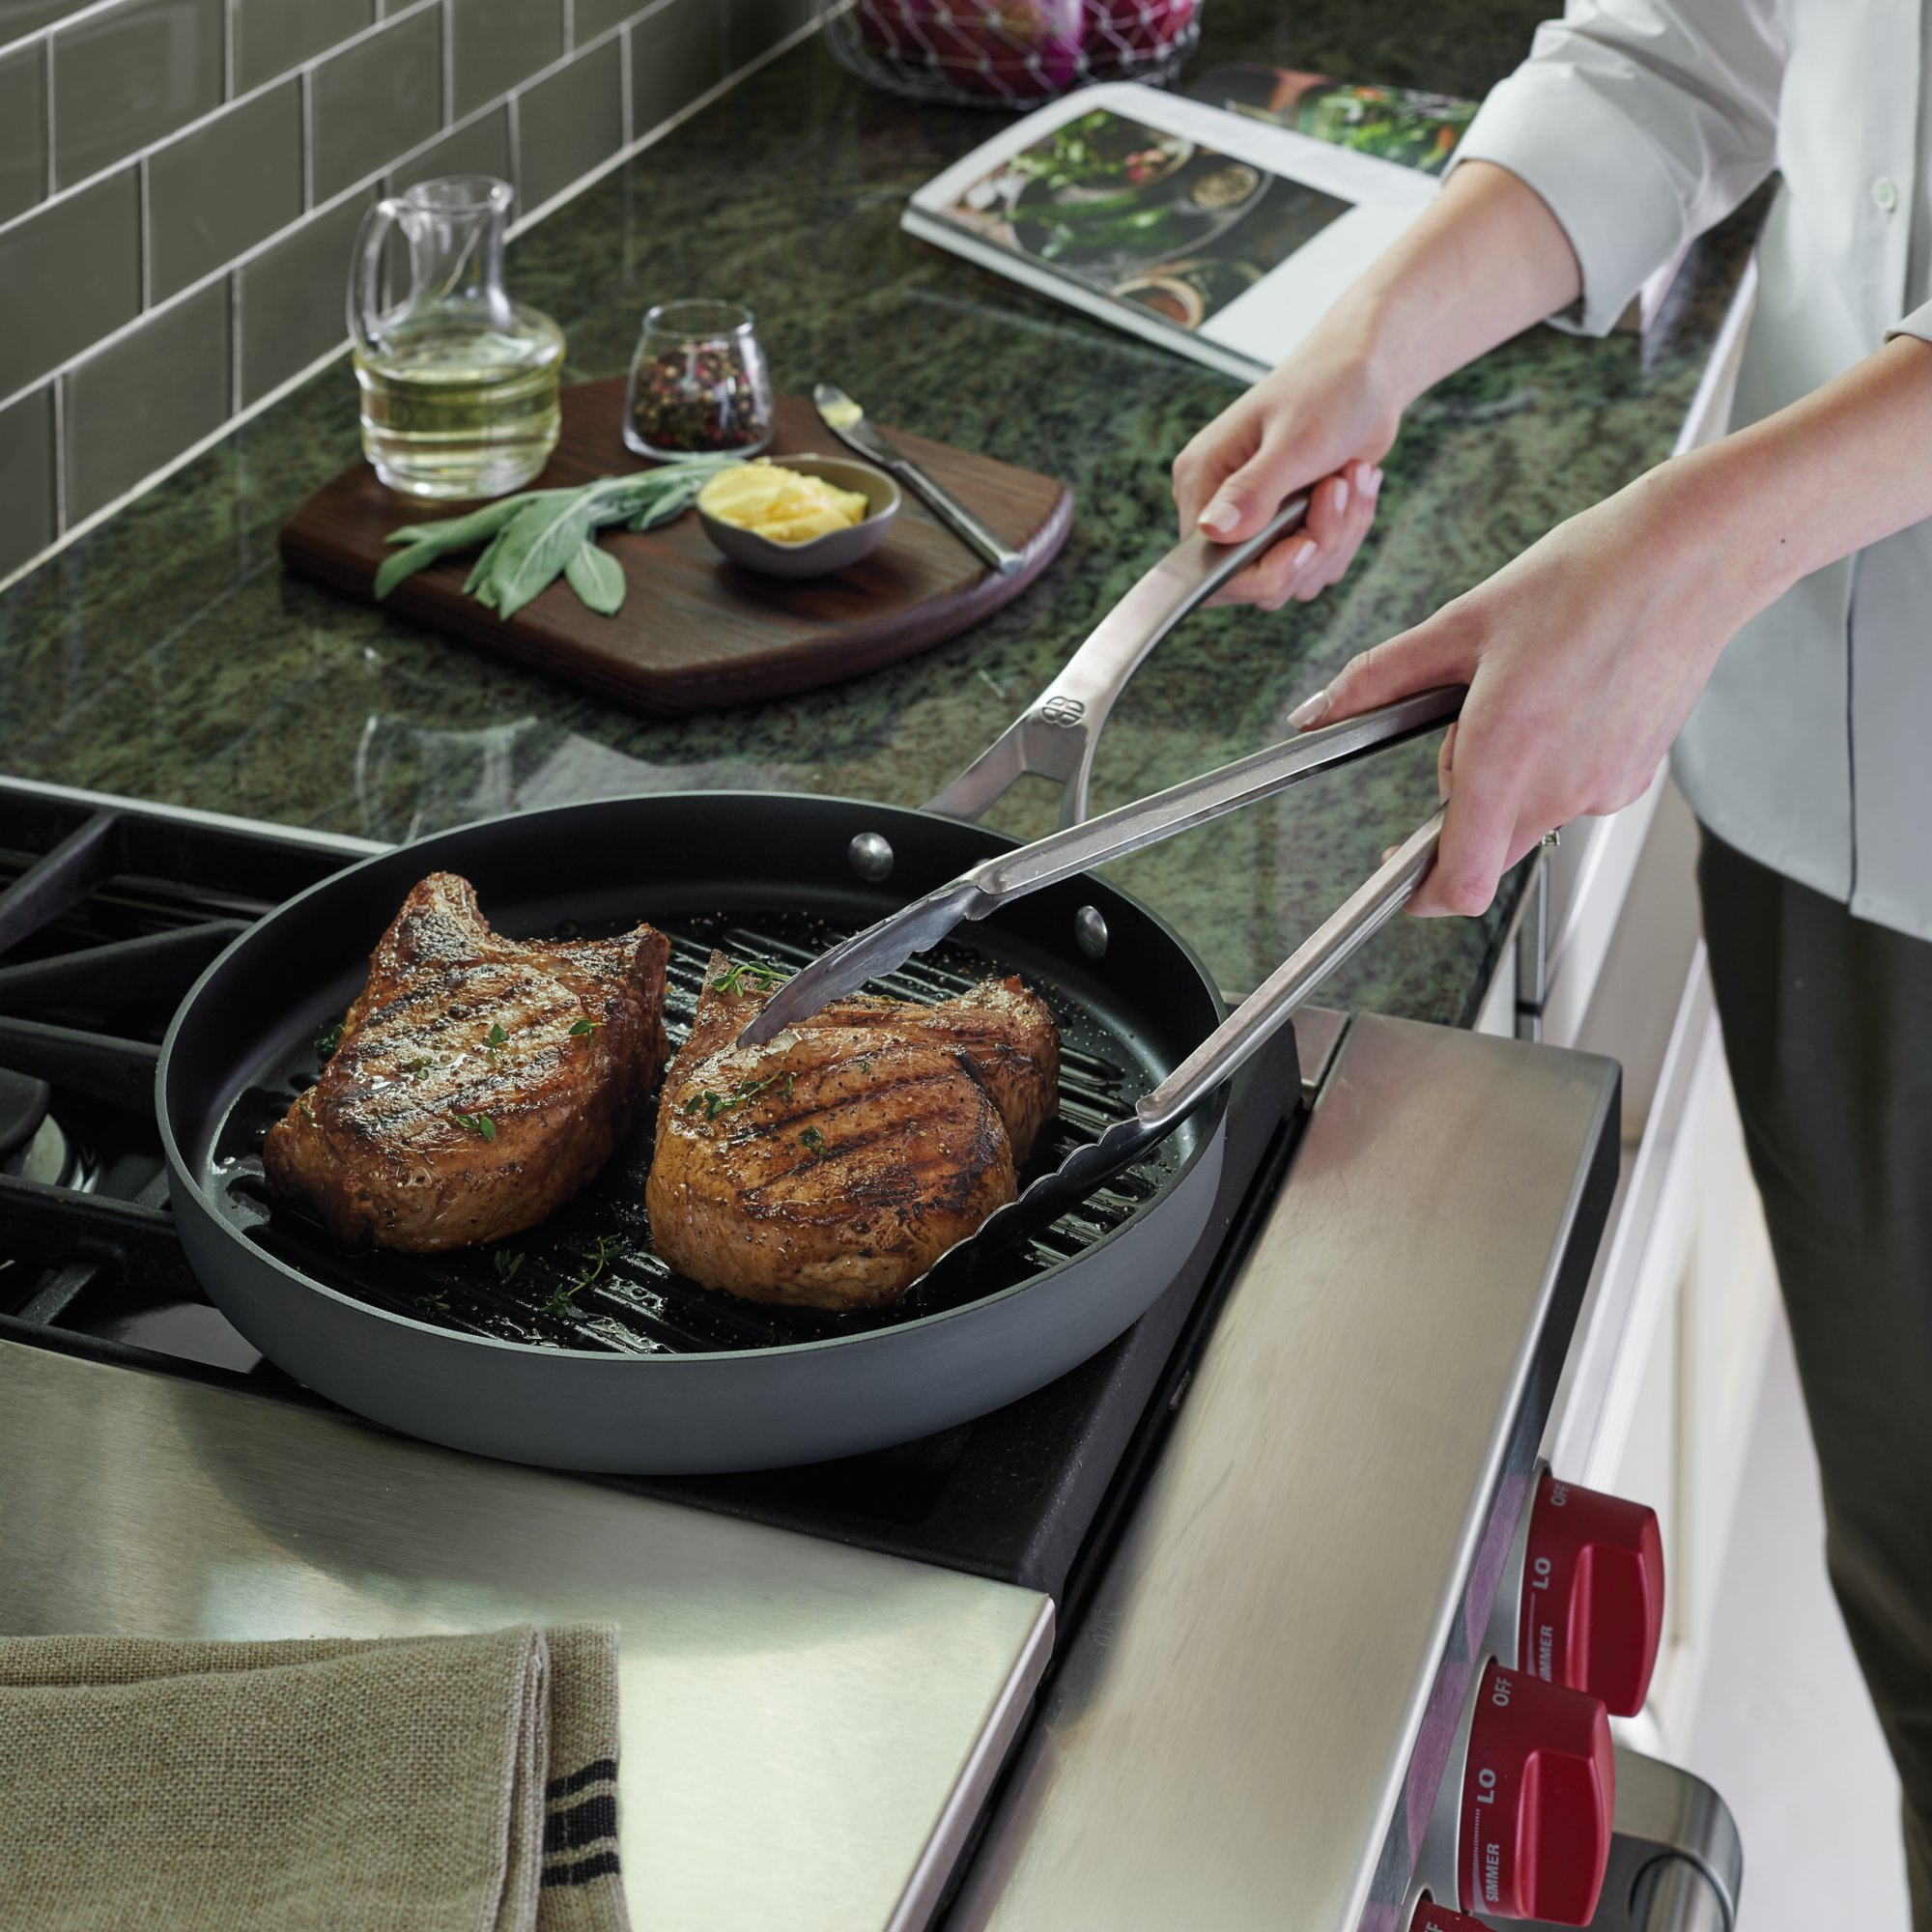 Calphalon Signature Nonstick 12 In Round Grill Pan